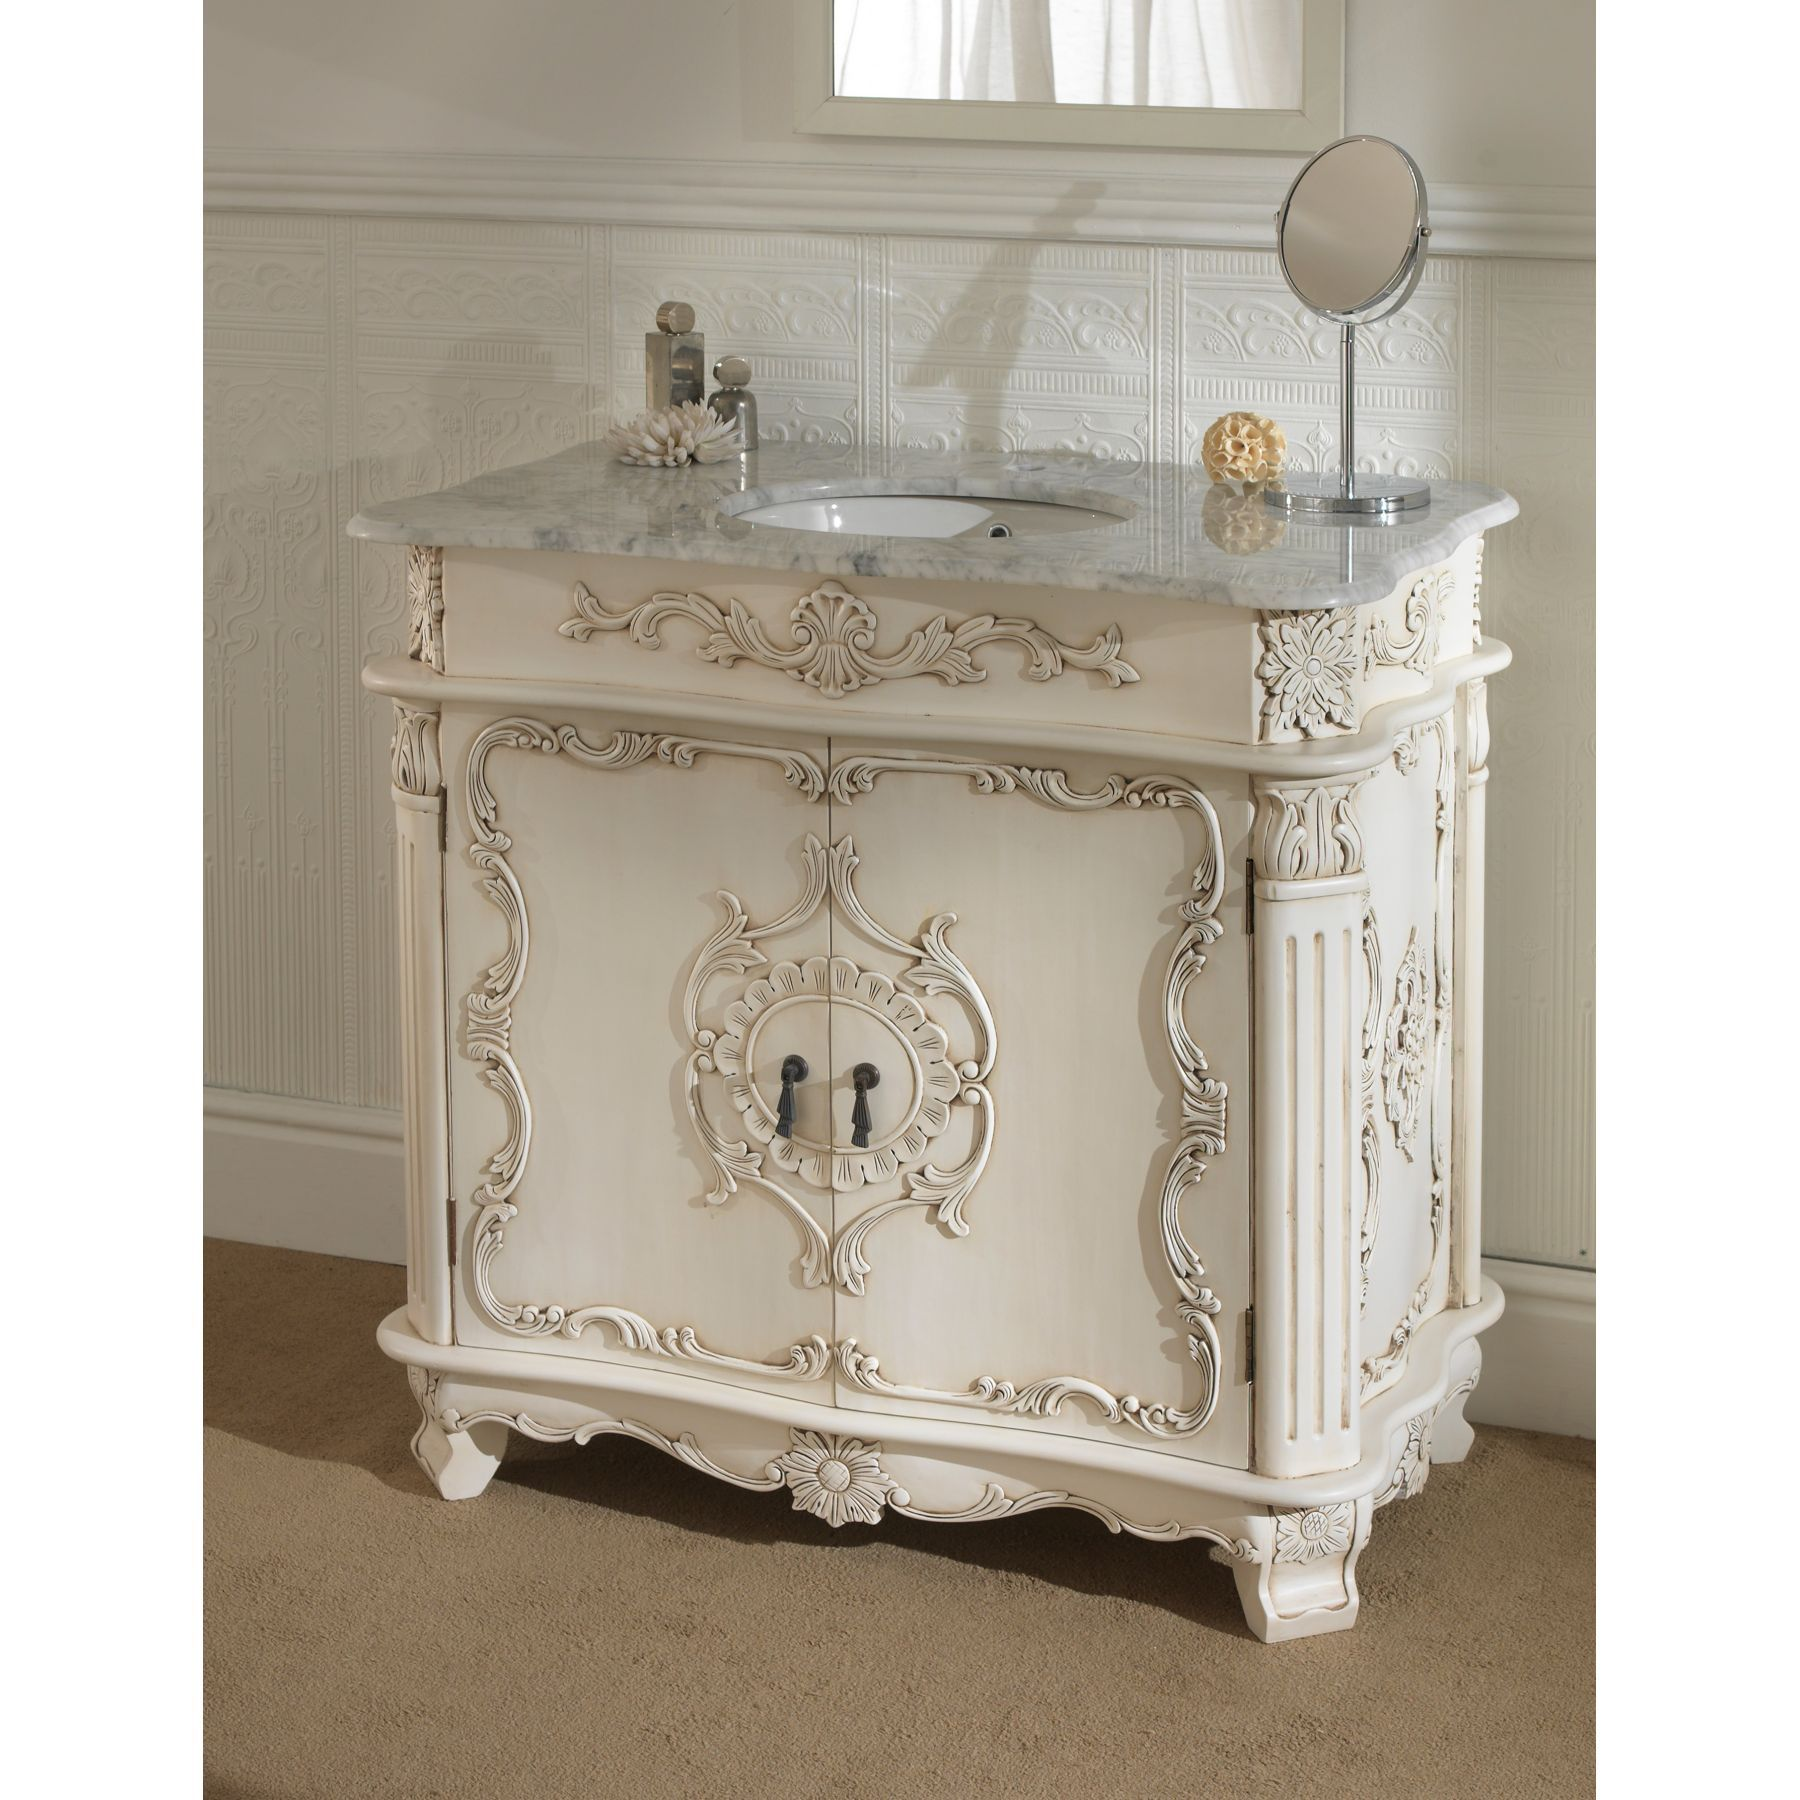 French Country Bathroom Vanities: A Home Office Furnished With White French Provincial